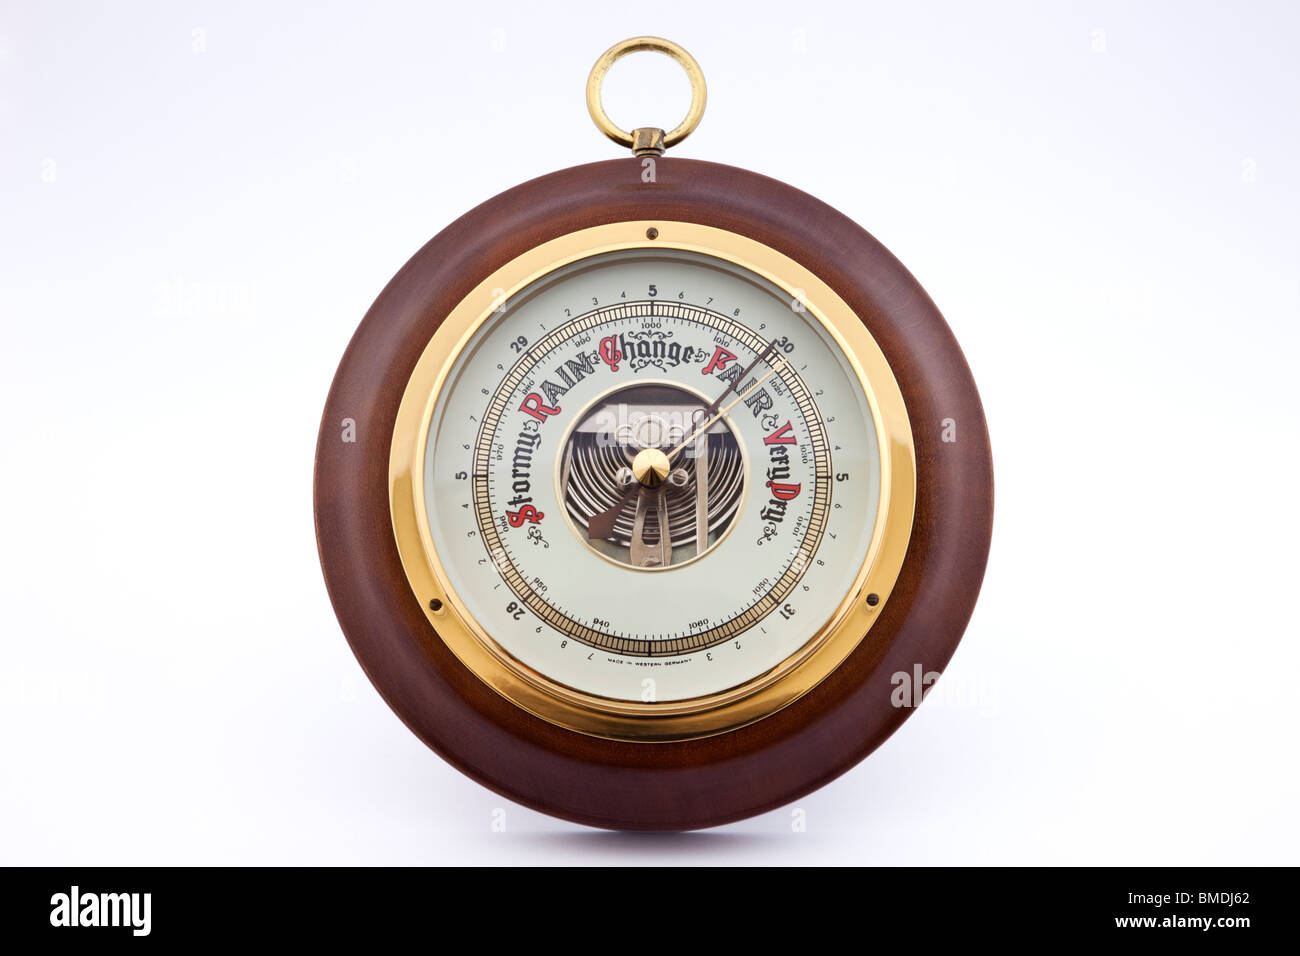 Classic aneroid barometer in brass and wood on plain white. Made in Germany by a German manufacturer. England UK - Stock Image